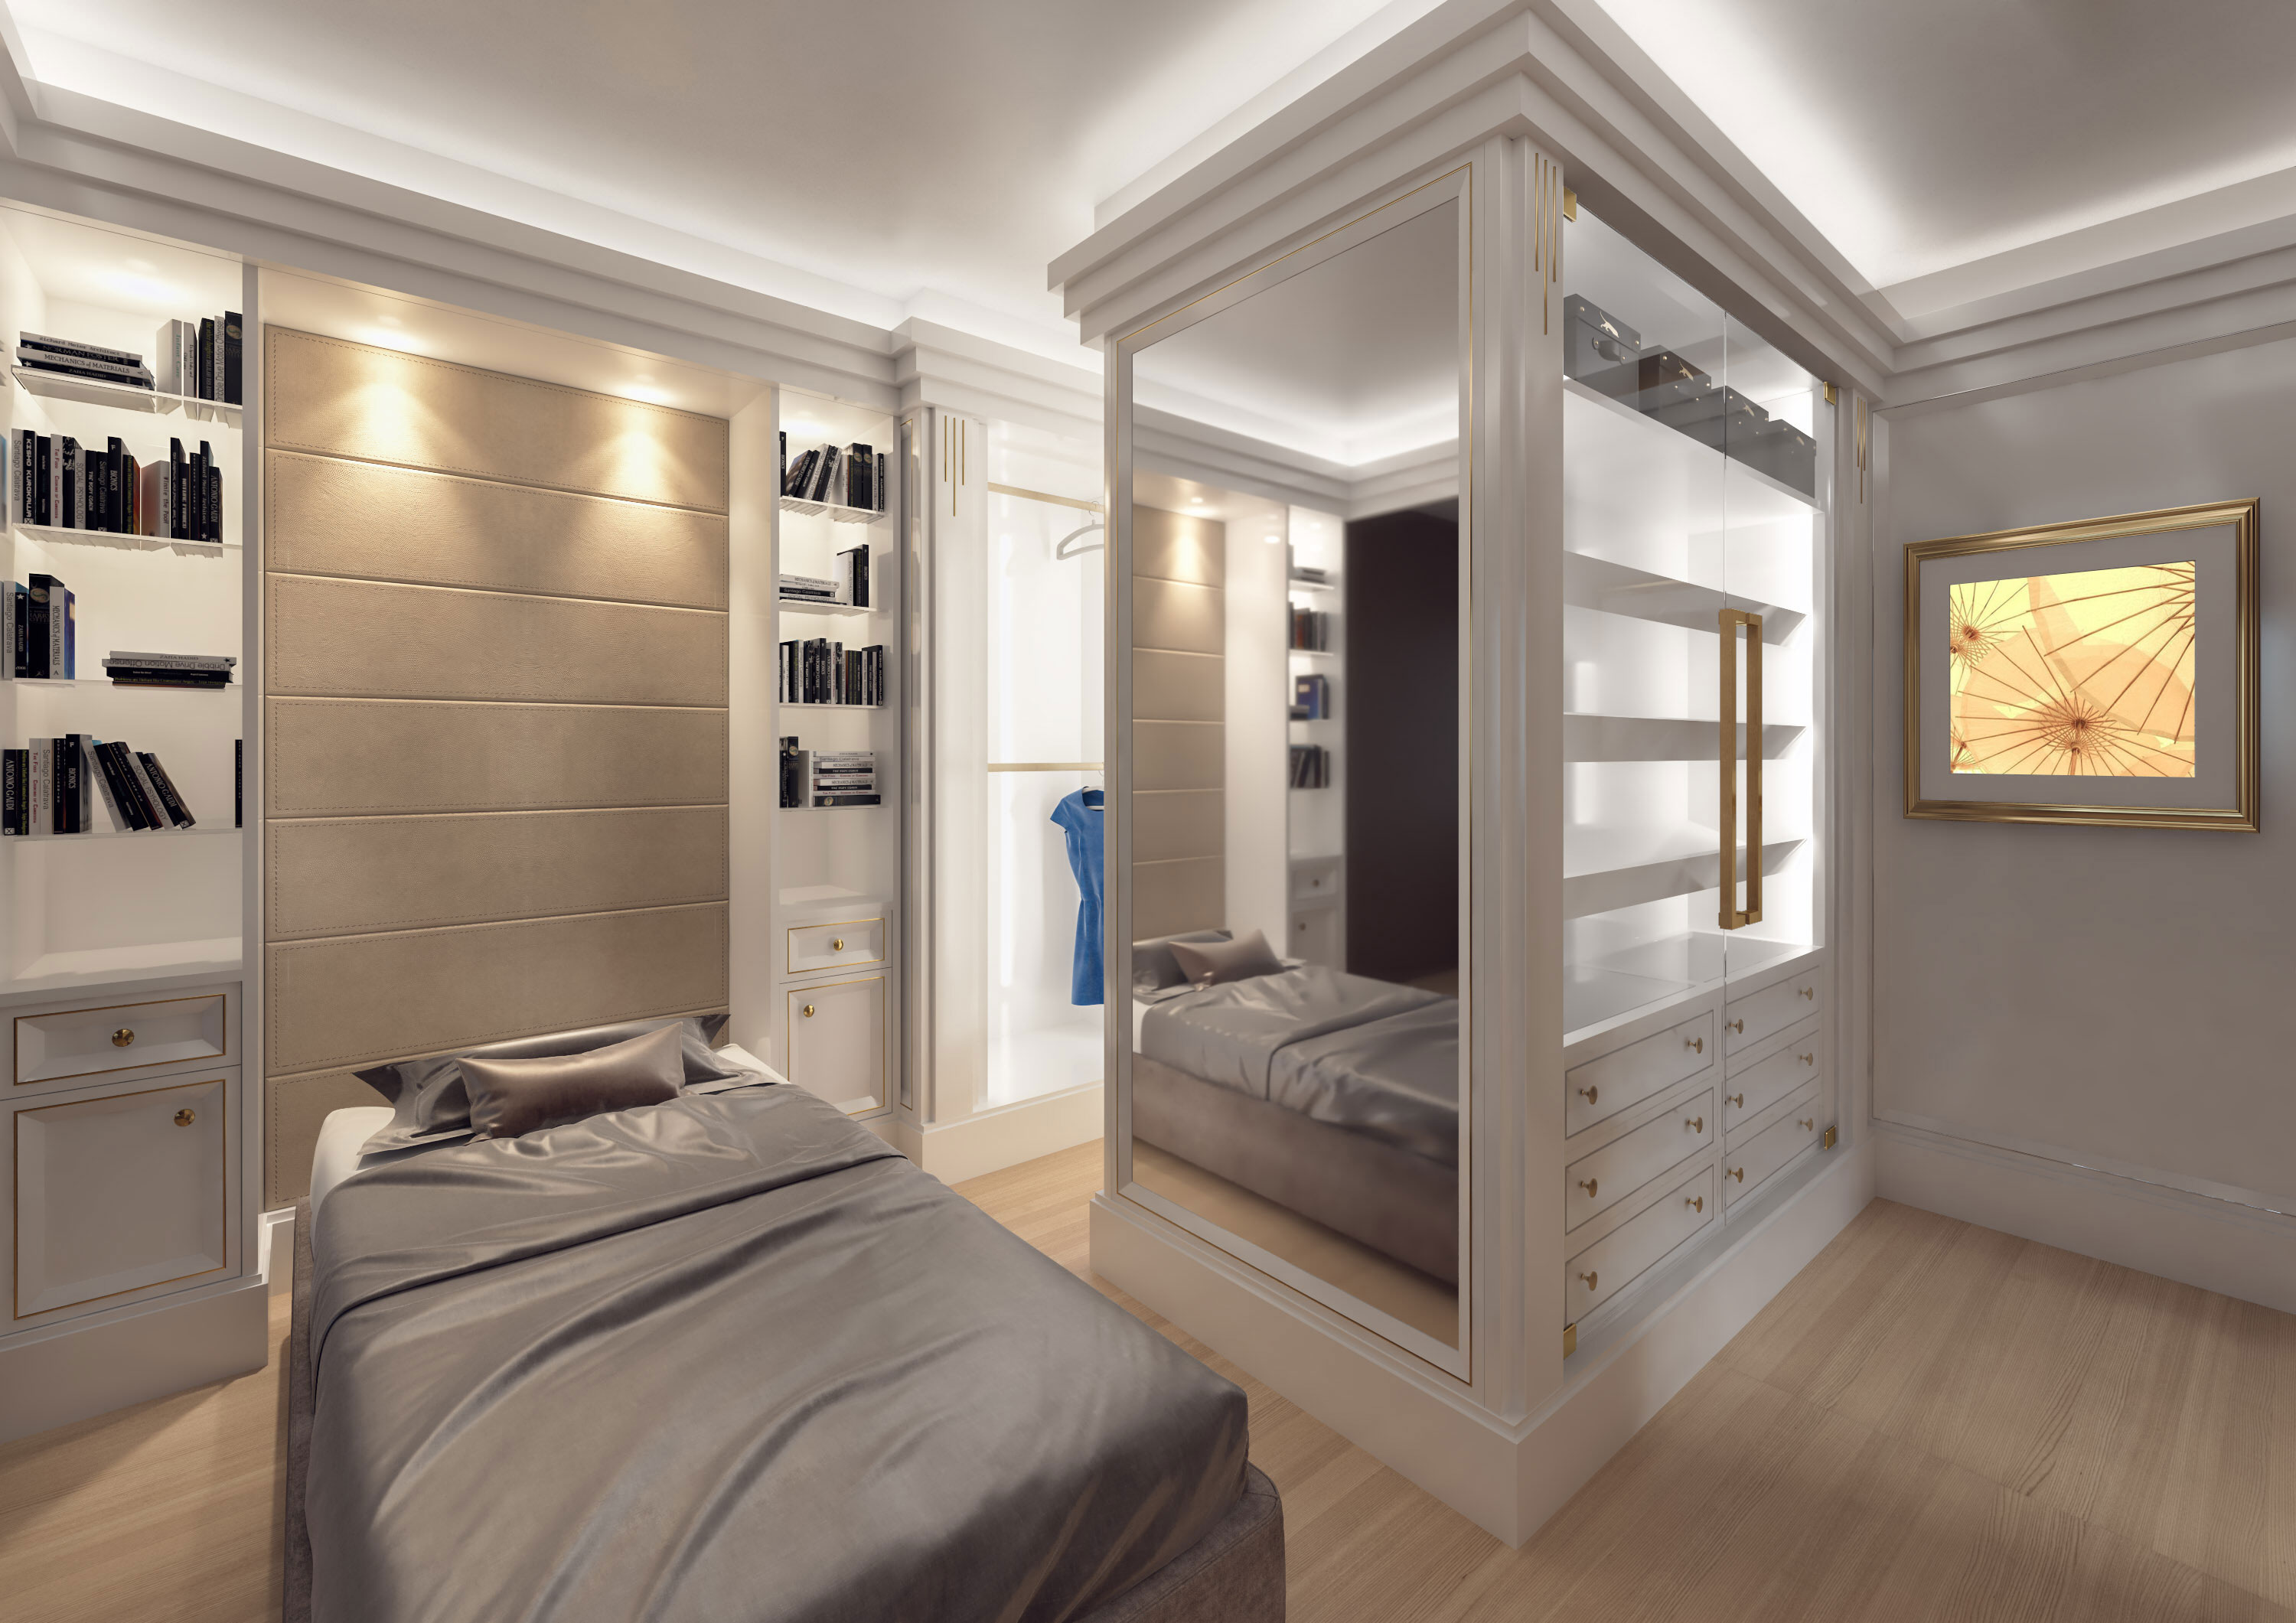 Faoma contemporary walk-in wardrobe